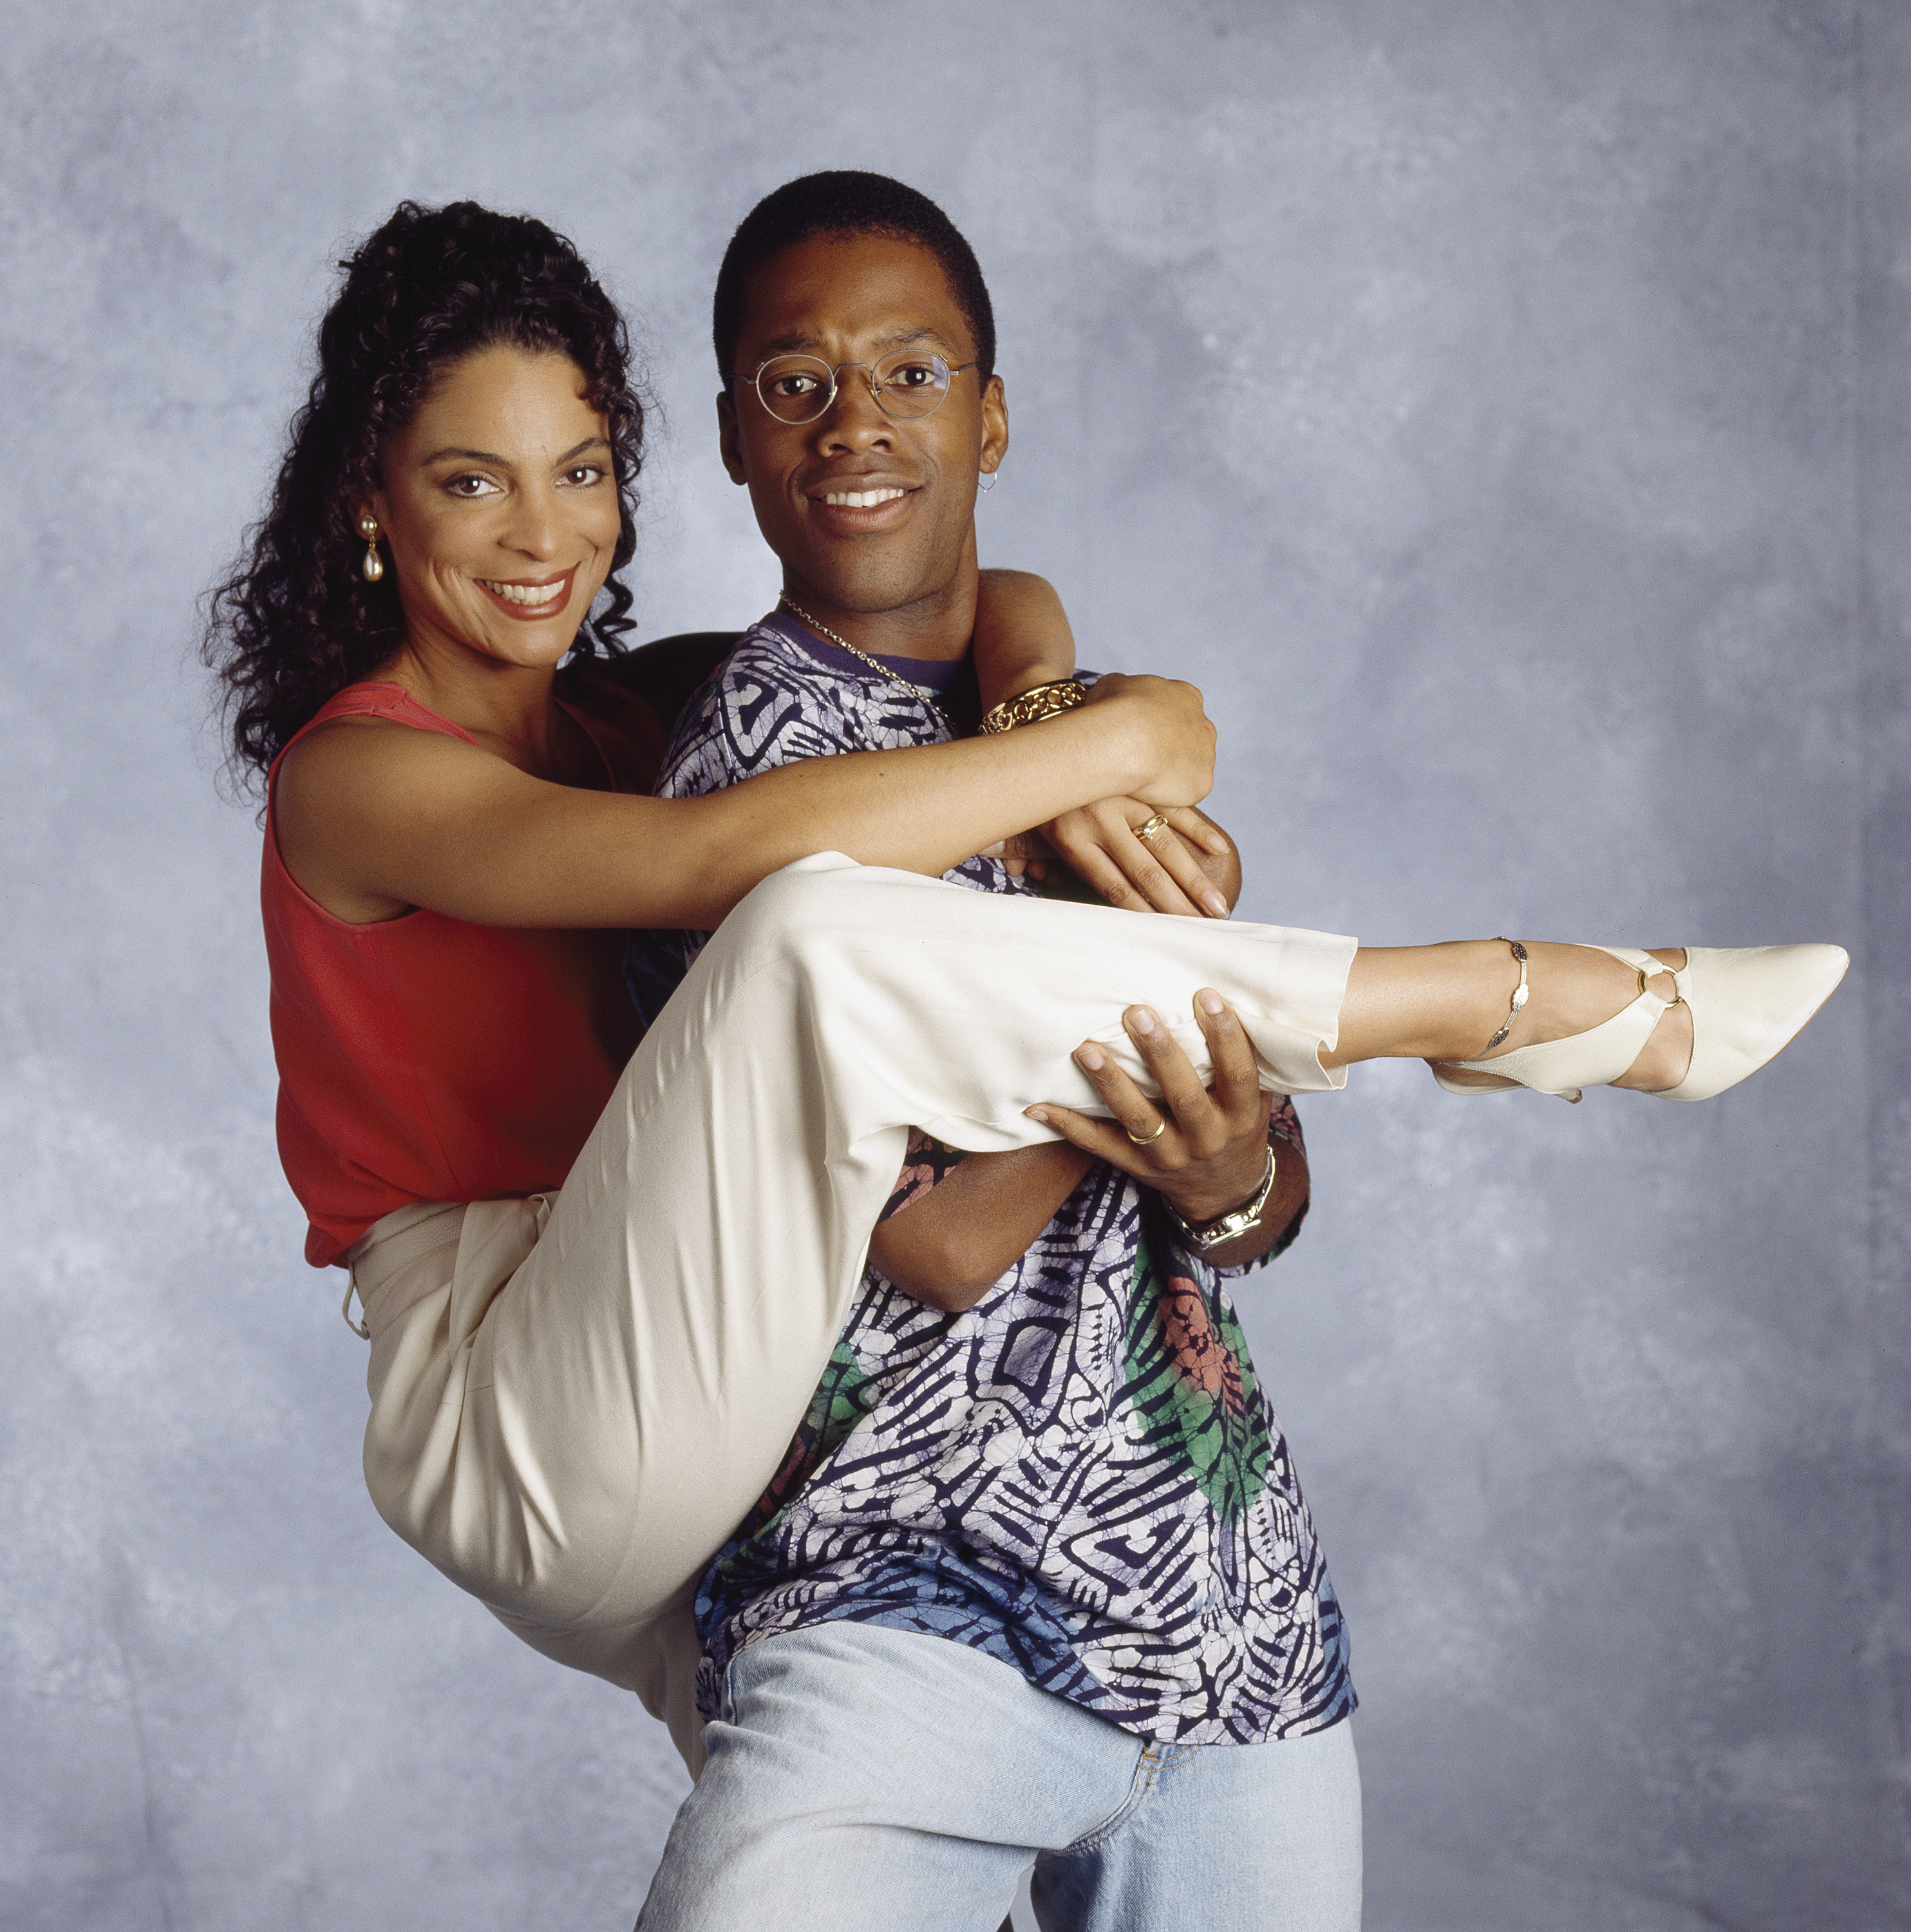 Jasmine Guy and Kadeem Hardison in A Different World (1987)